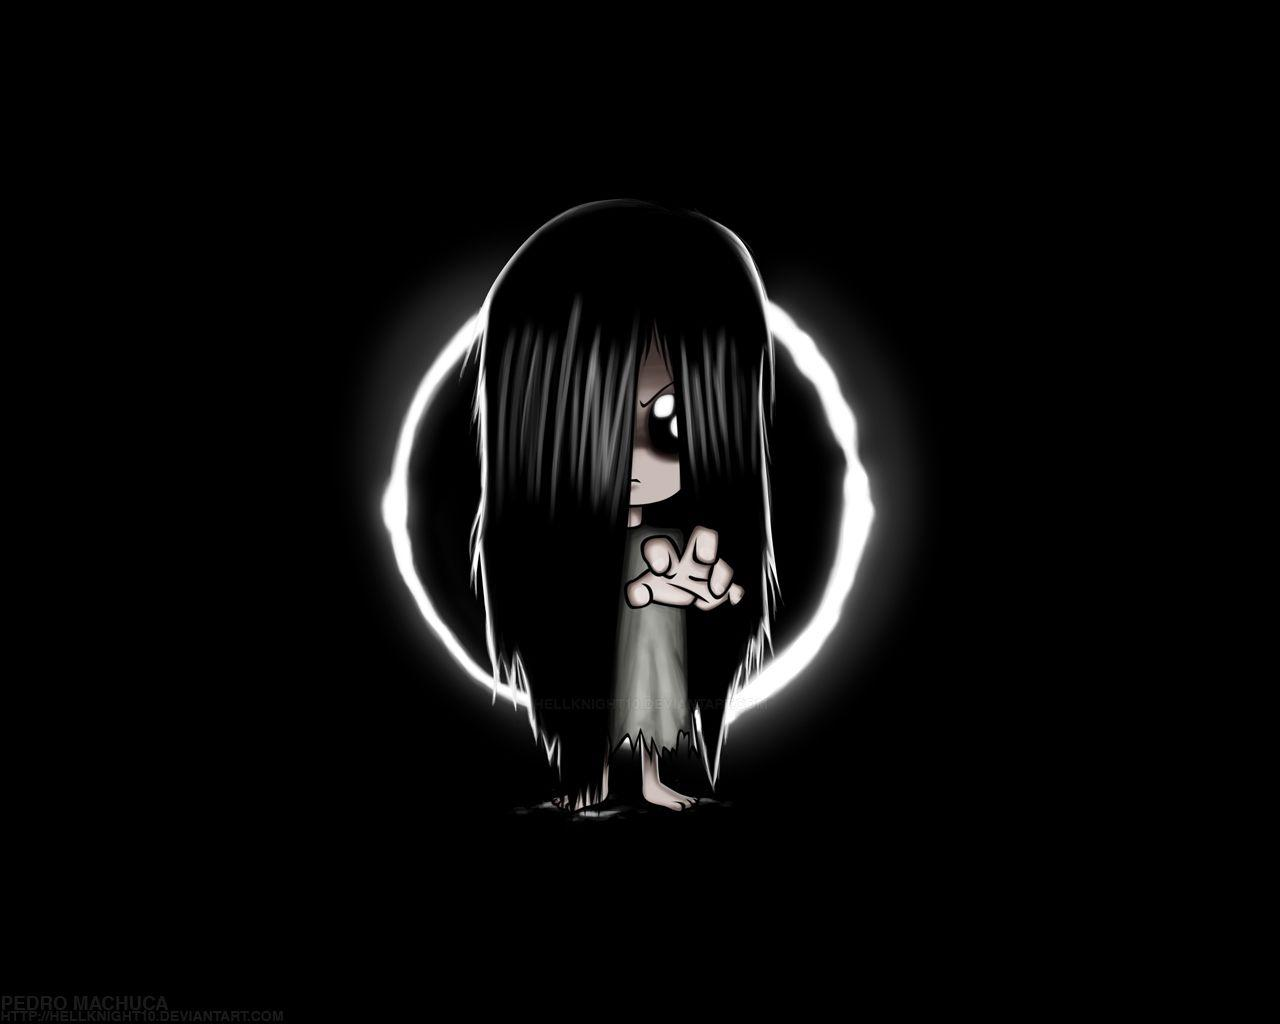 Asian Horror Movies image The Ring HD wallpapers and backgrounds